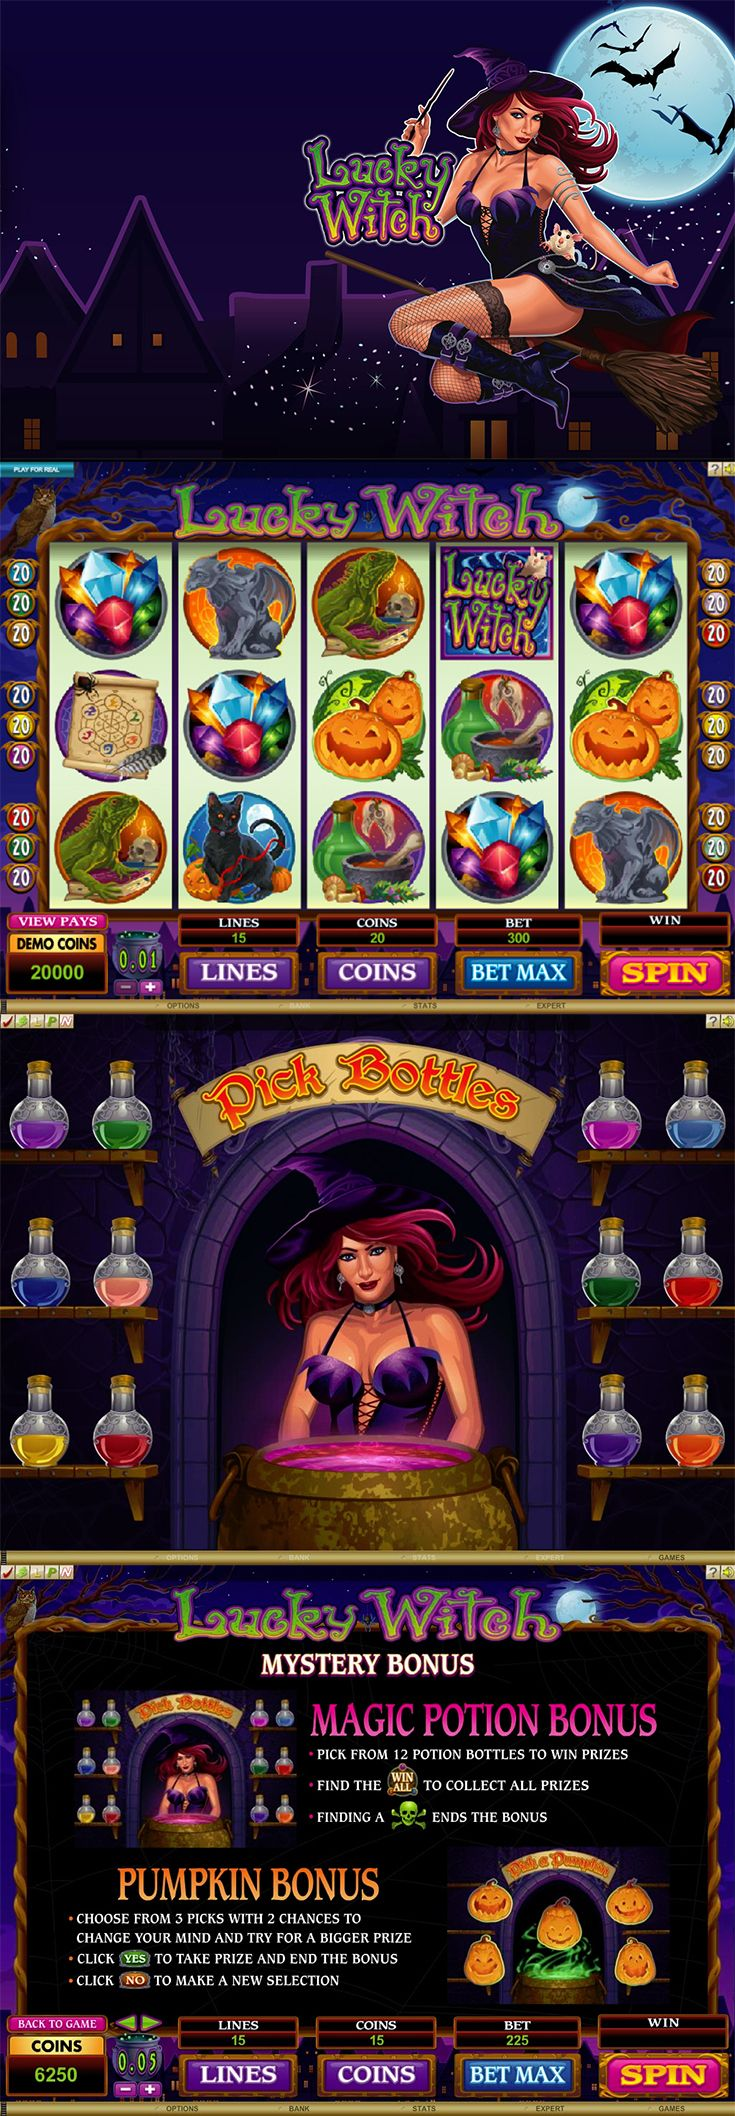 Casino bonuses are the best way to enjoy any new online casino experience and we have an exclusive bonus for our readers who sign up at Euro Palace Casino!  ---  #OnlineCasino #CasinoBonus #LuckyWitch #Witch